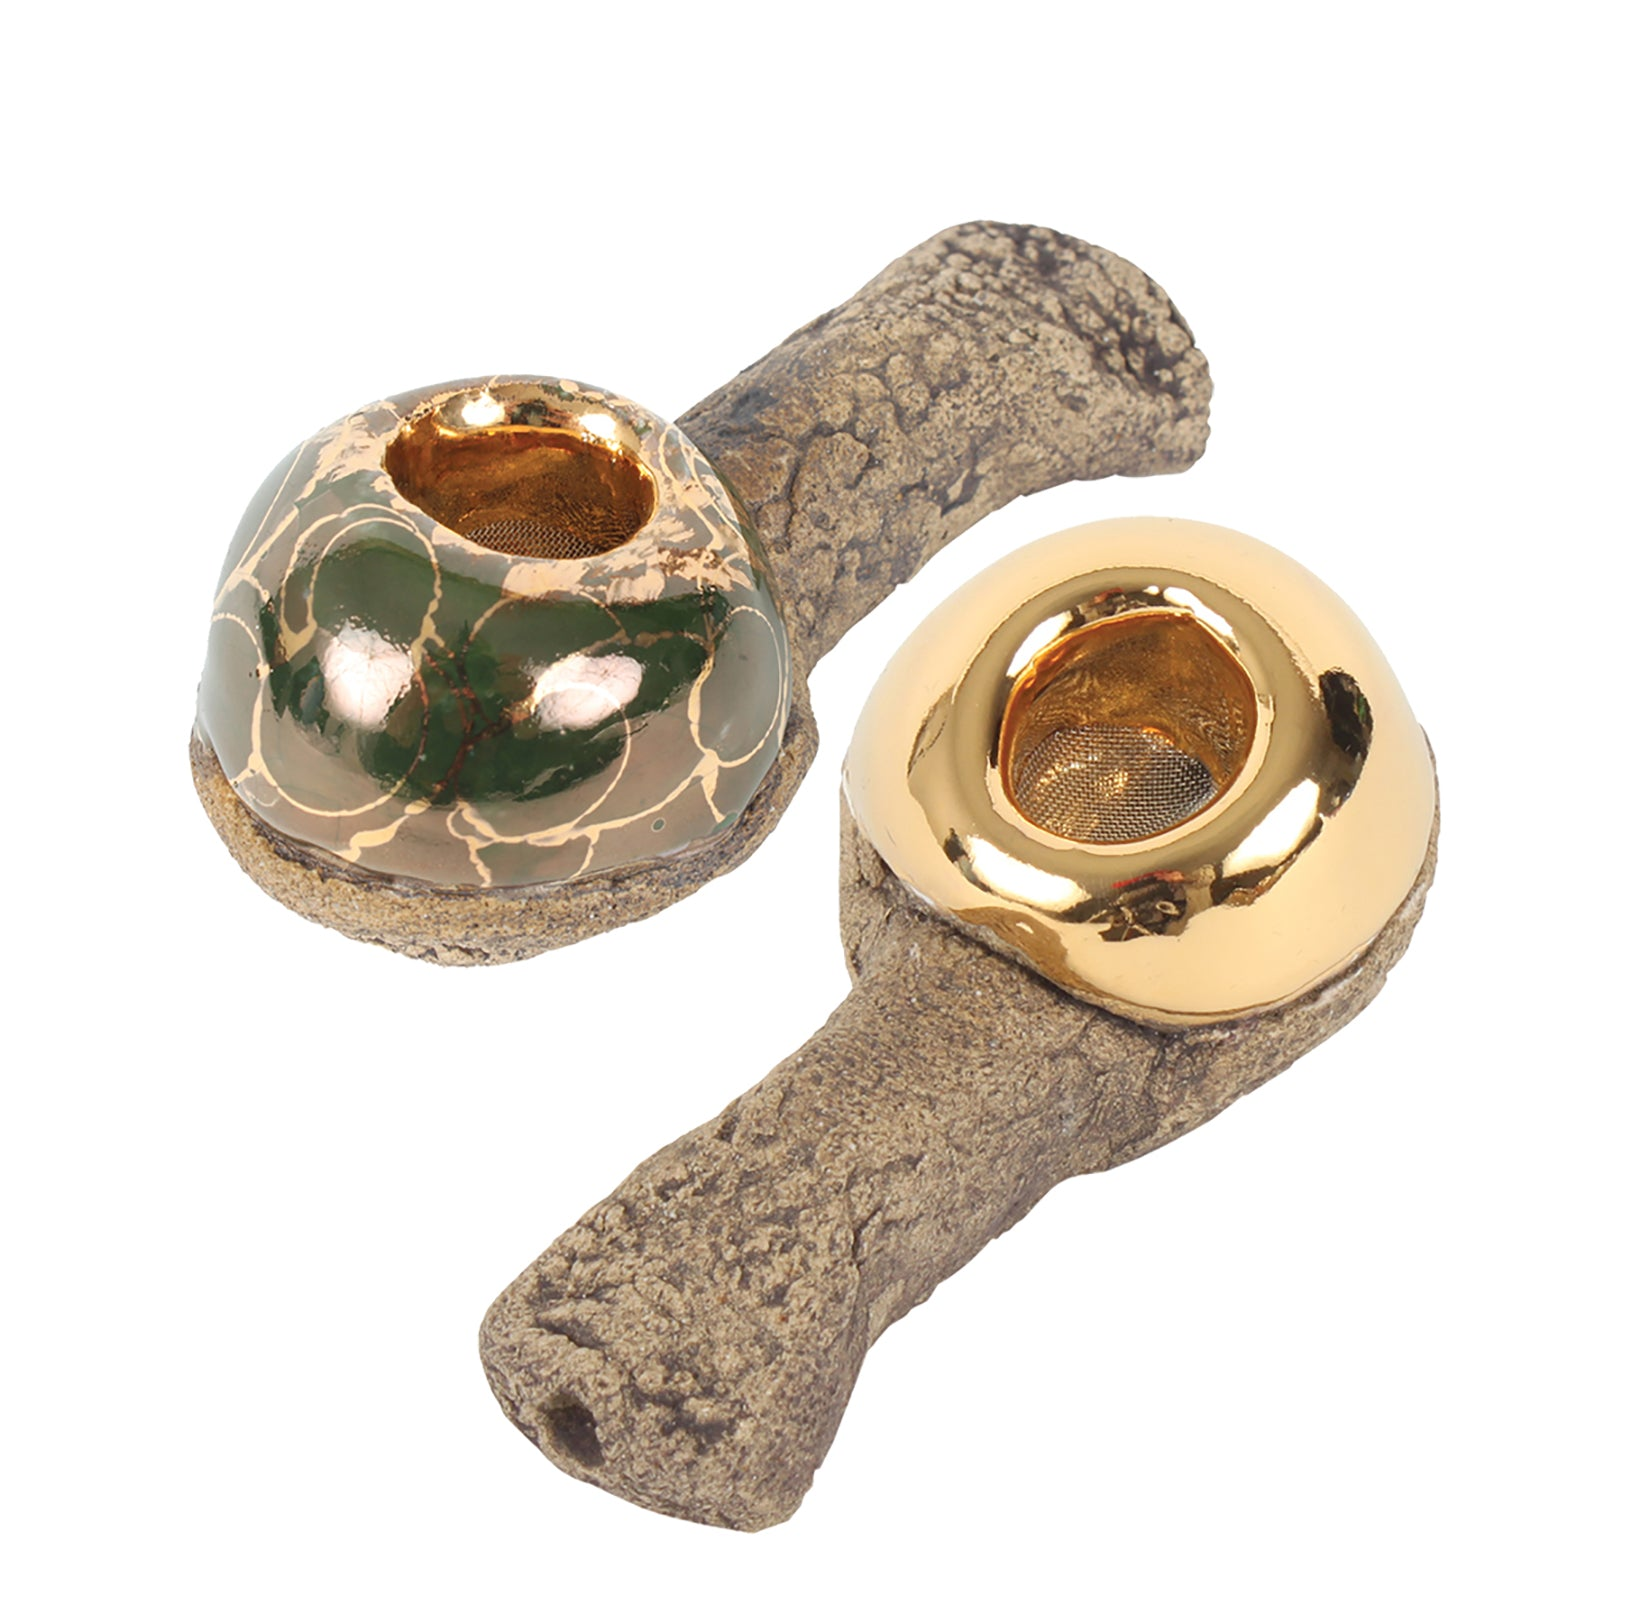 2 Pipes   4oz Kleen Green Gold - Celebration Pipes